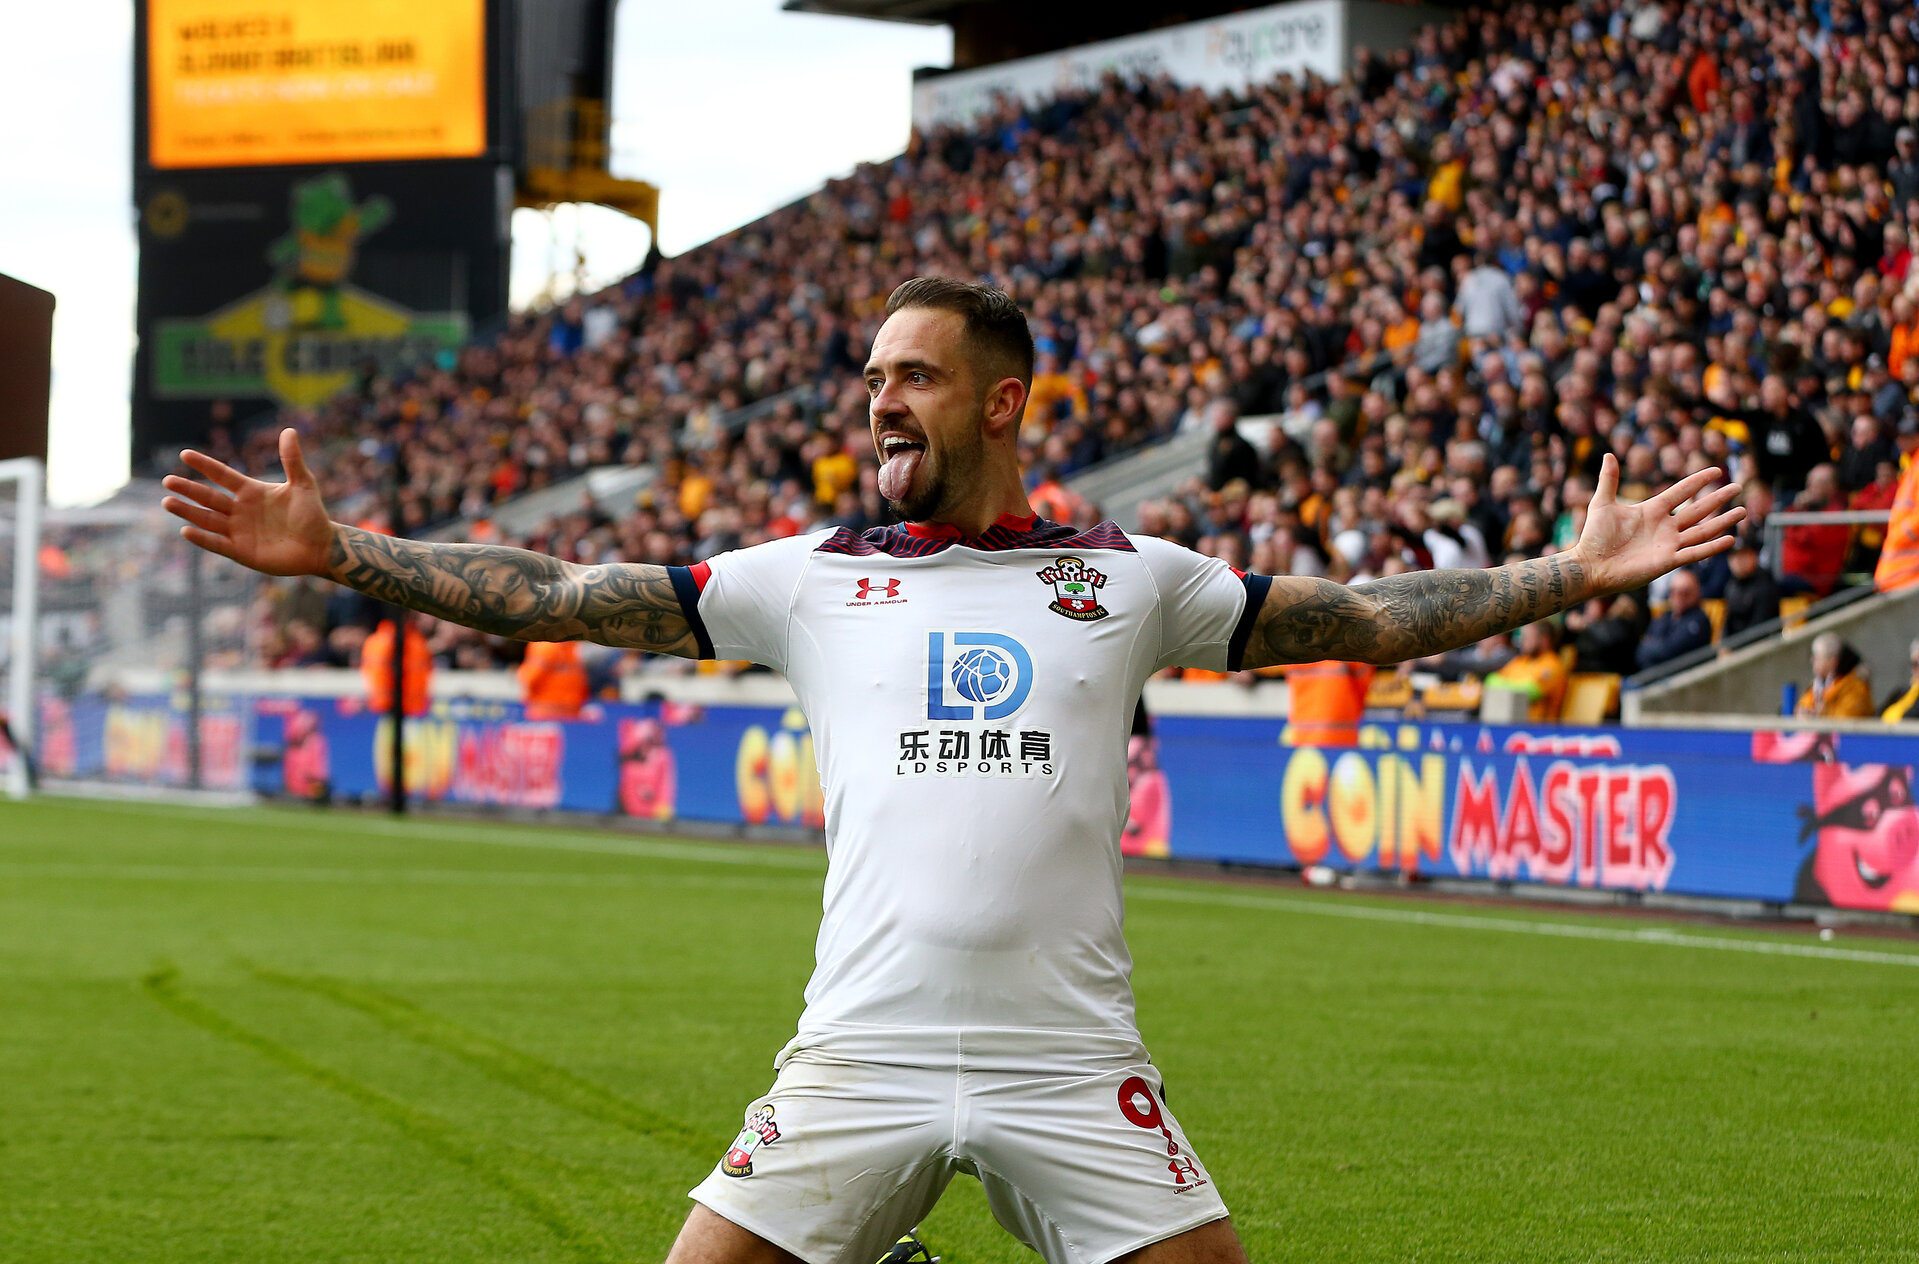 WOLVERHAMPTON, ENGLAND - OCTOBER 19: Danny Ings of Southampton celebrates after putting his side 1-0 up during the Premier League match between Wolverhampton Wanderers and Southampton FC at Molineux on October 19, 2019 in Wolverhampton, United Kingdom. (Photo by Matt Watson/Southampton FC via Getty Images)